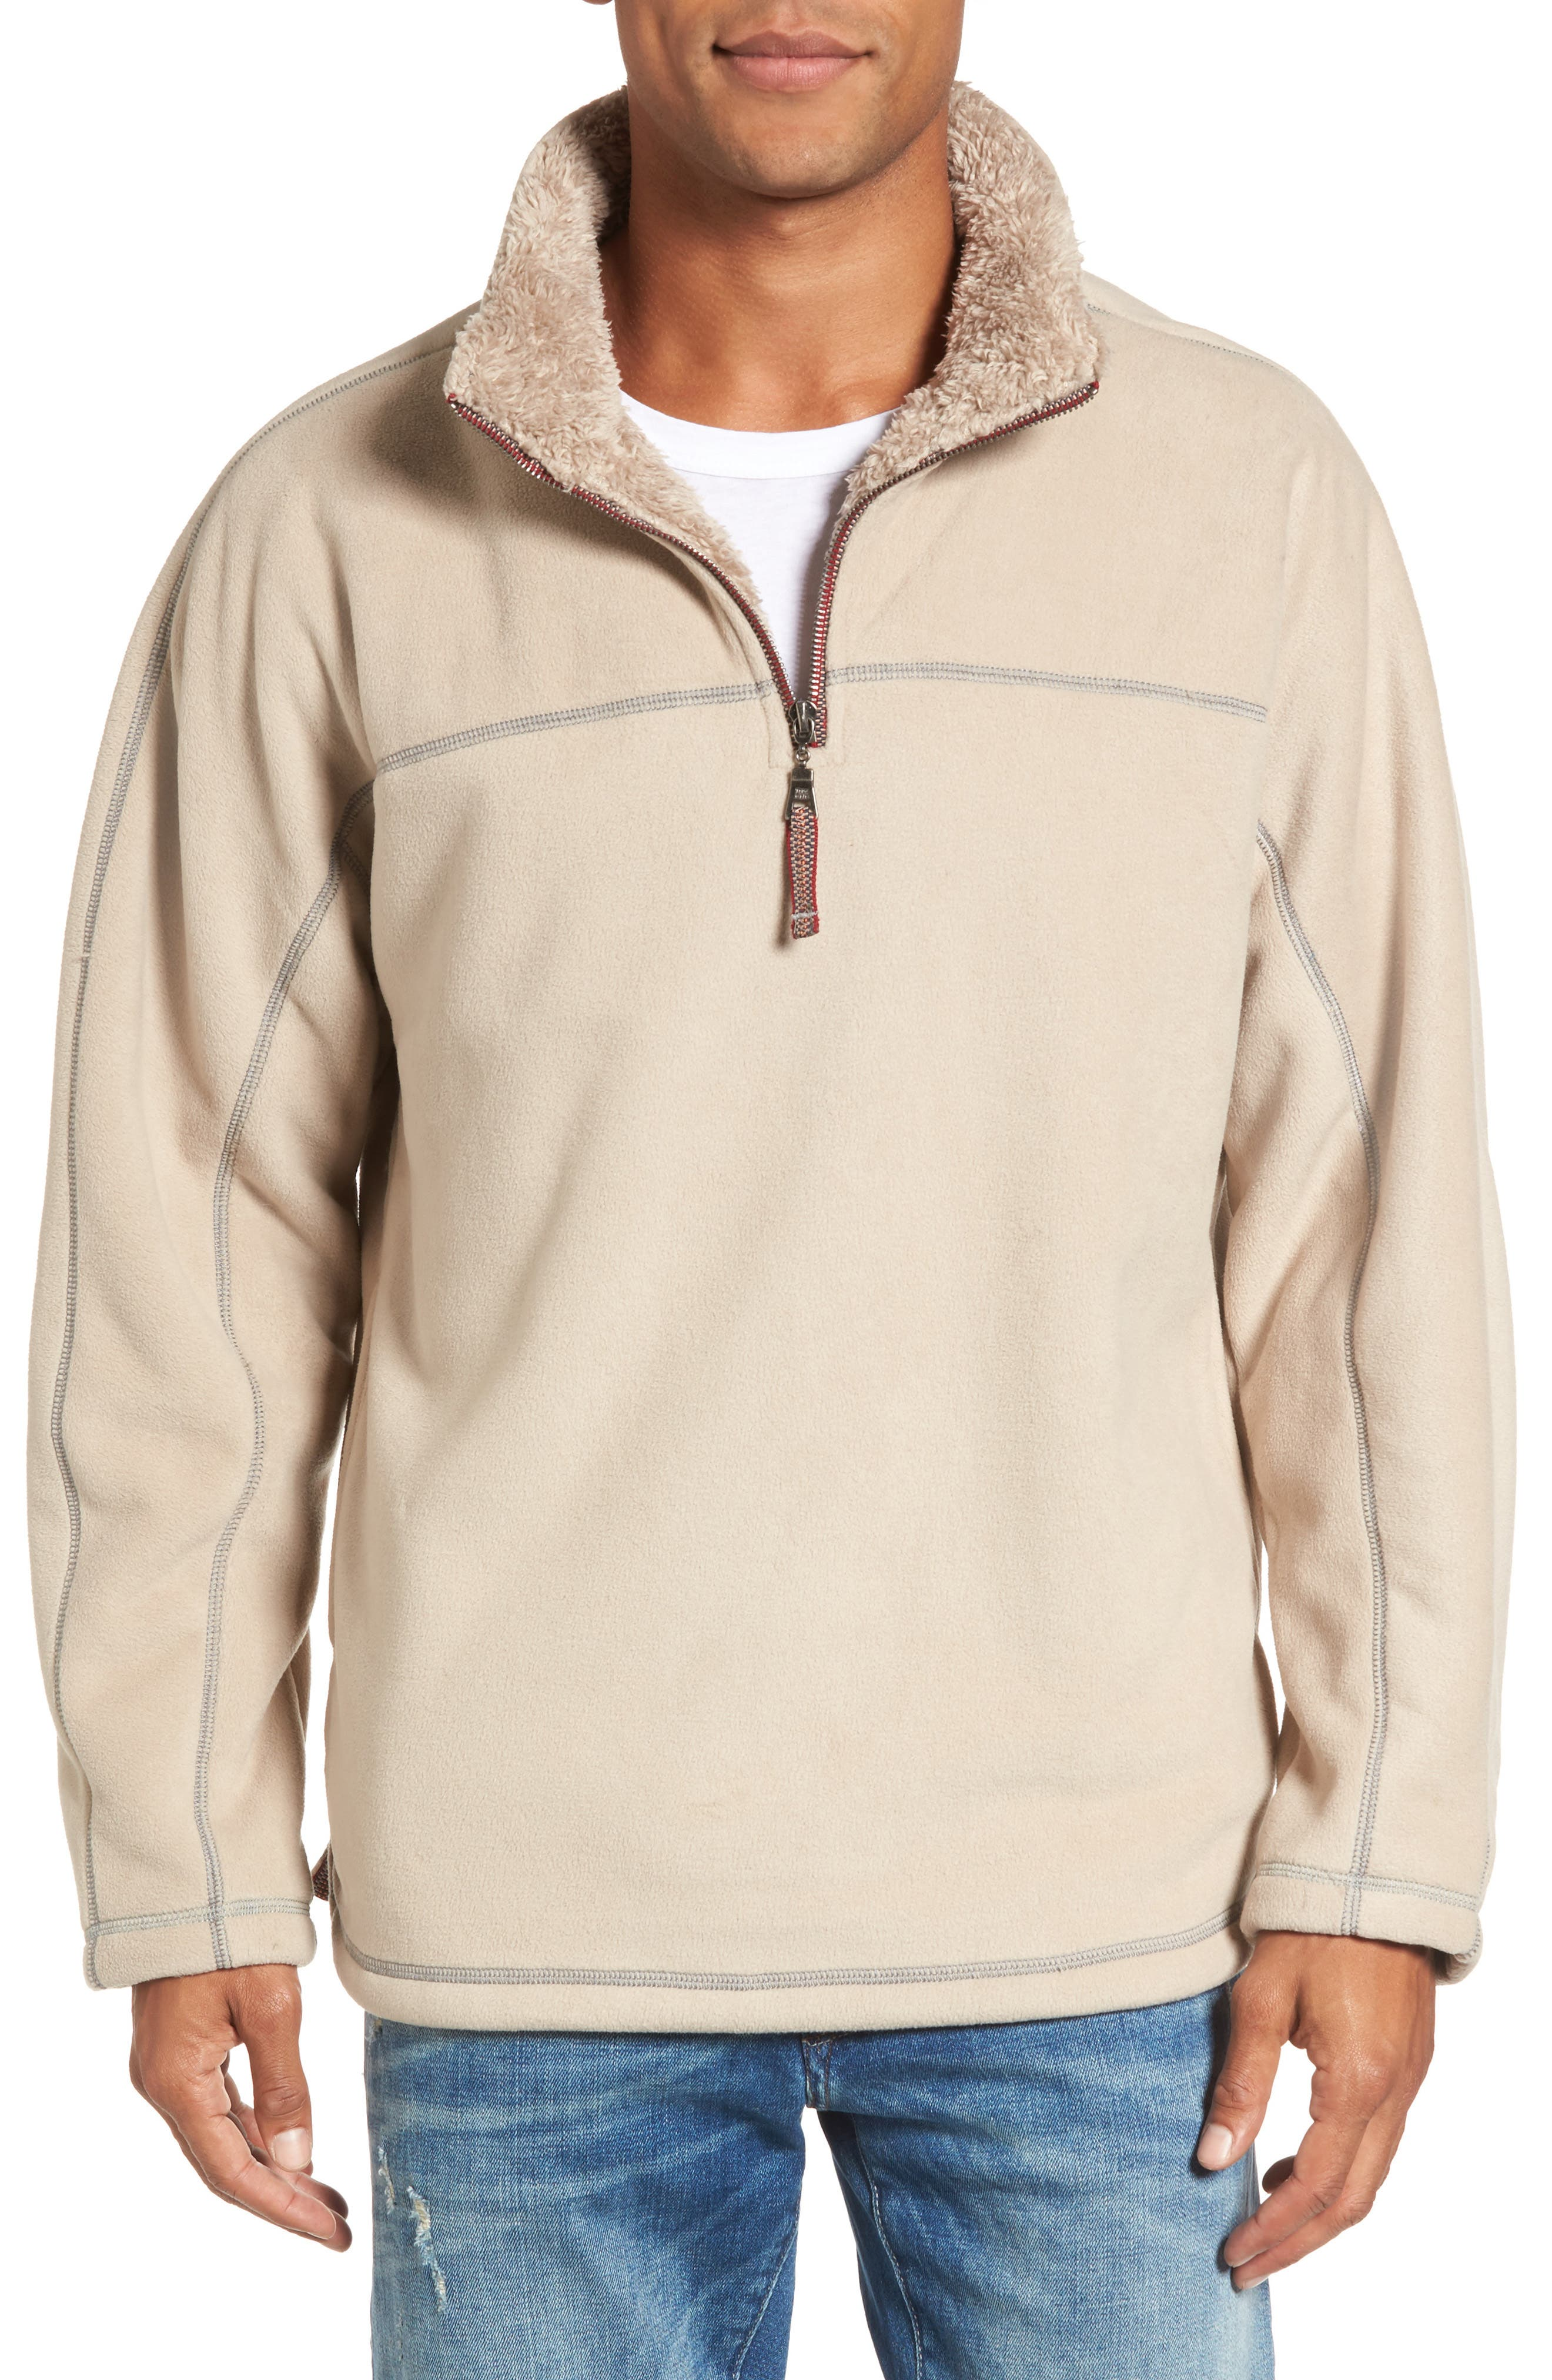 Bonded Polar Fleece Lined Pullover,                         Main,                         color, Sand